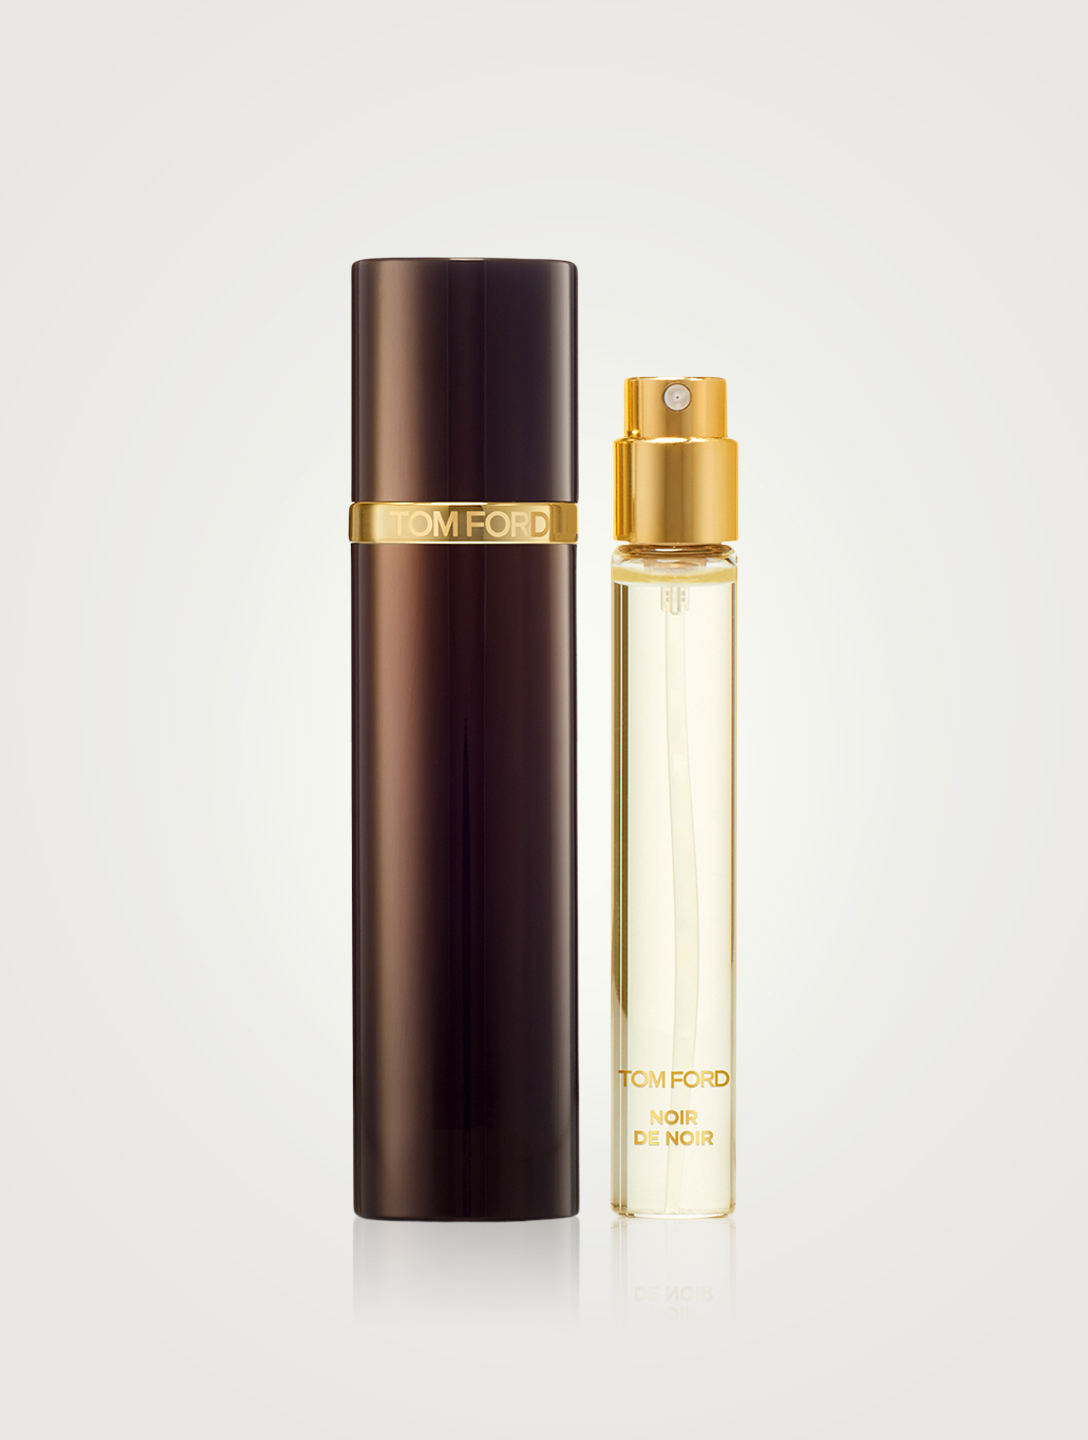 TOM FORD Noir De Noir Atomizer Beauty